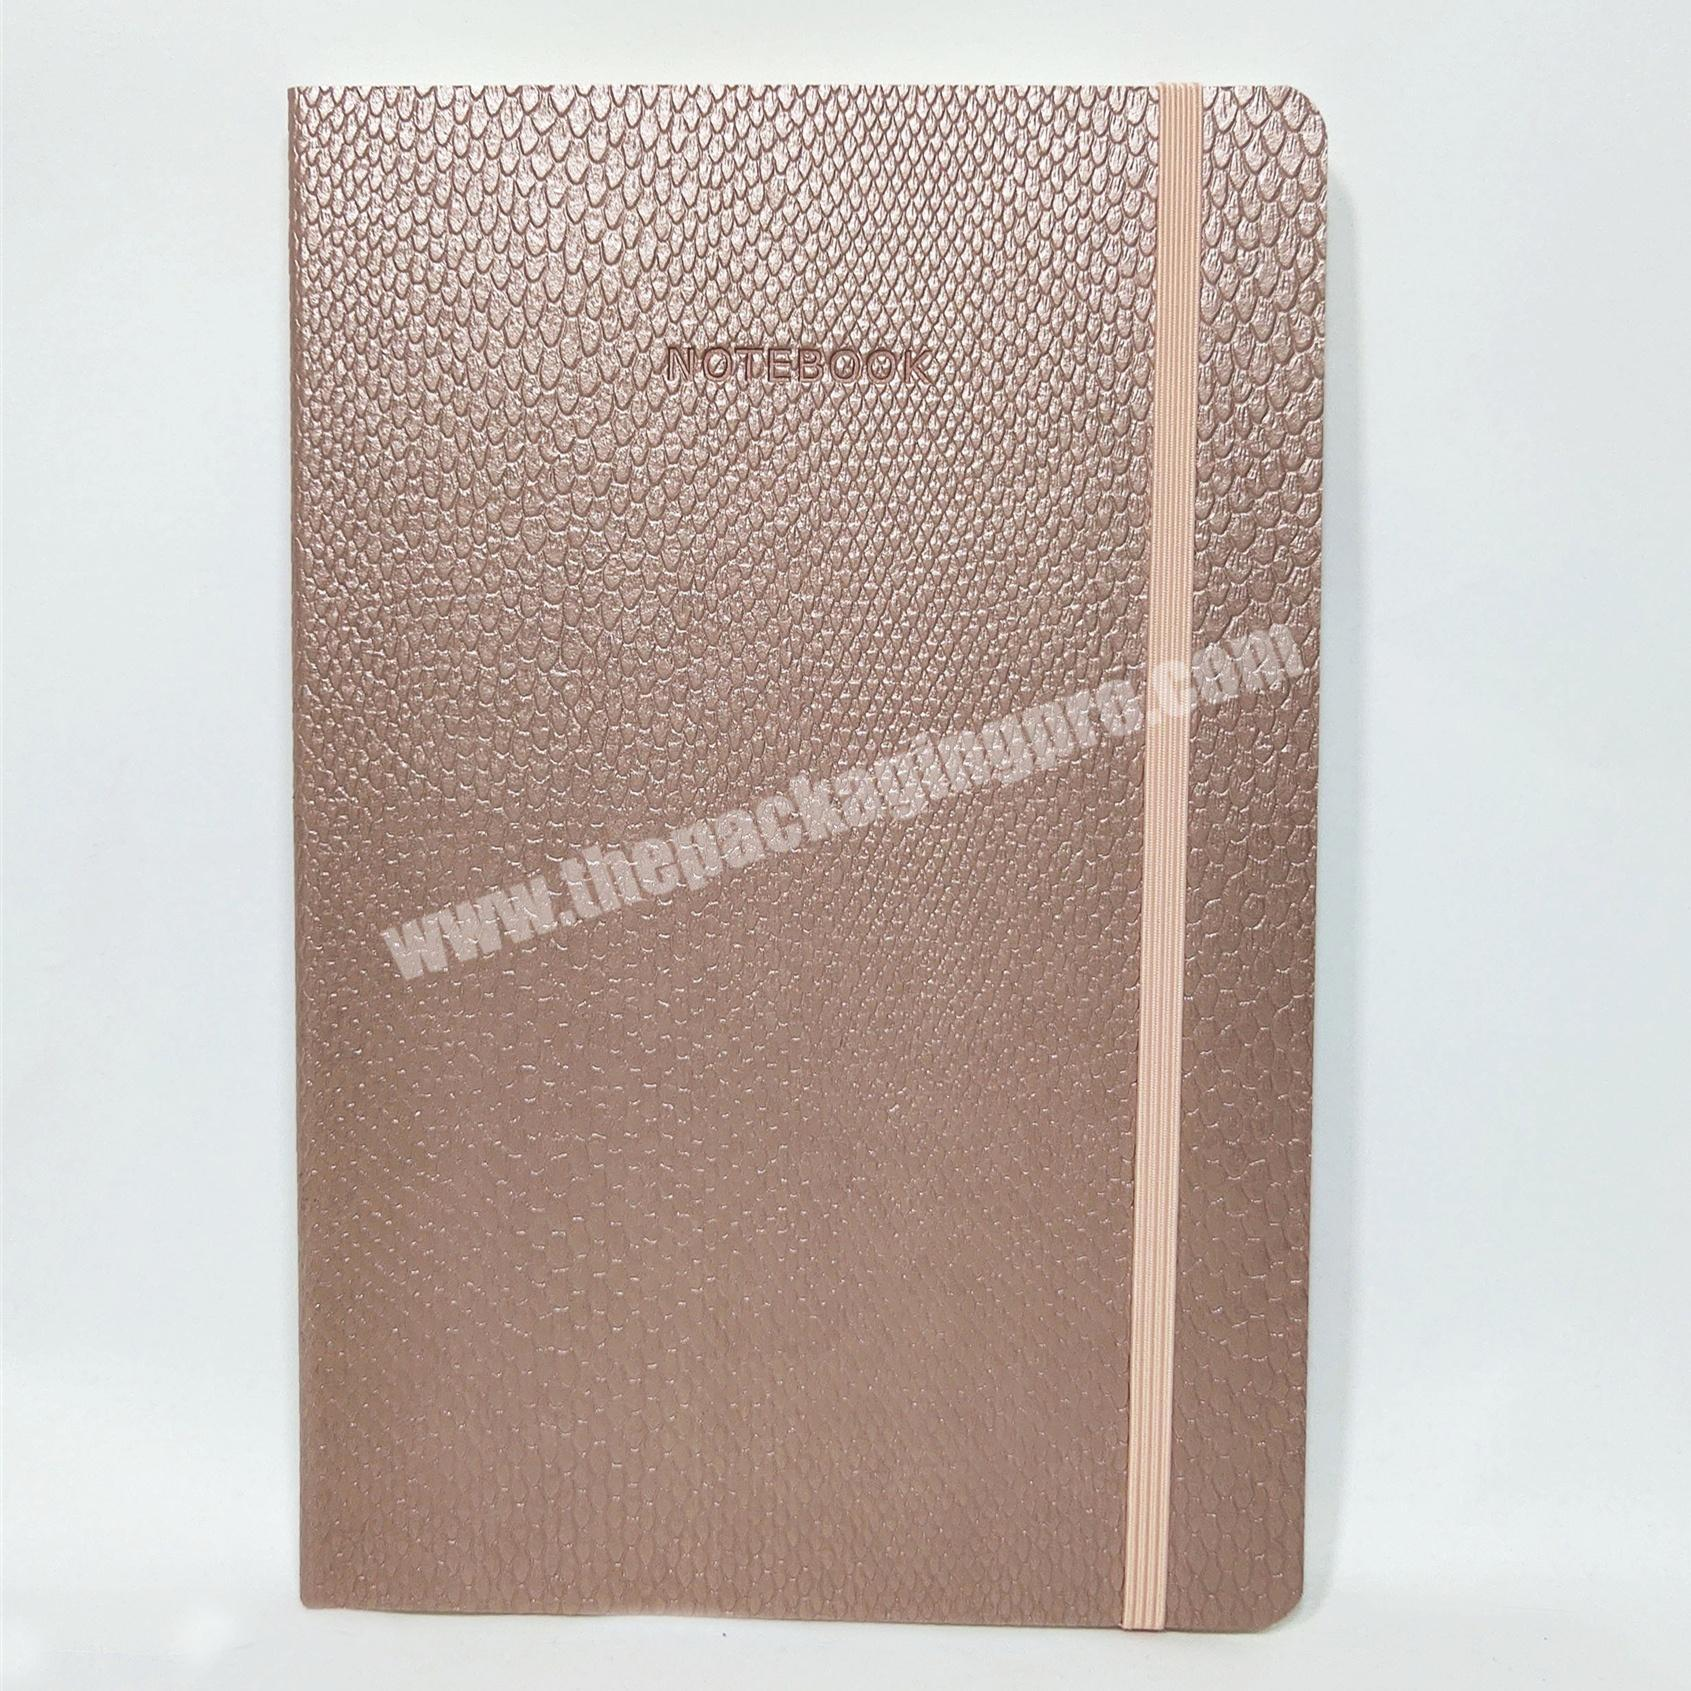 Good selling customized notebook business agenda academic planner for student